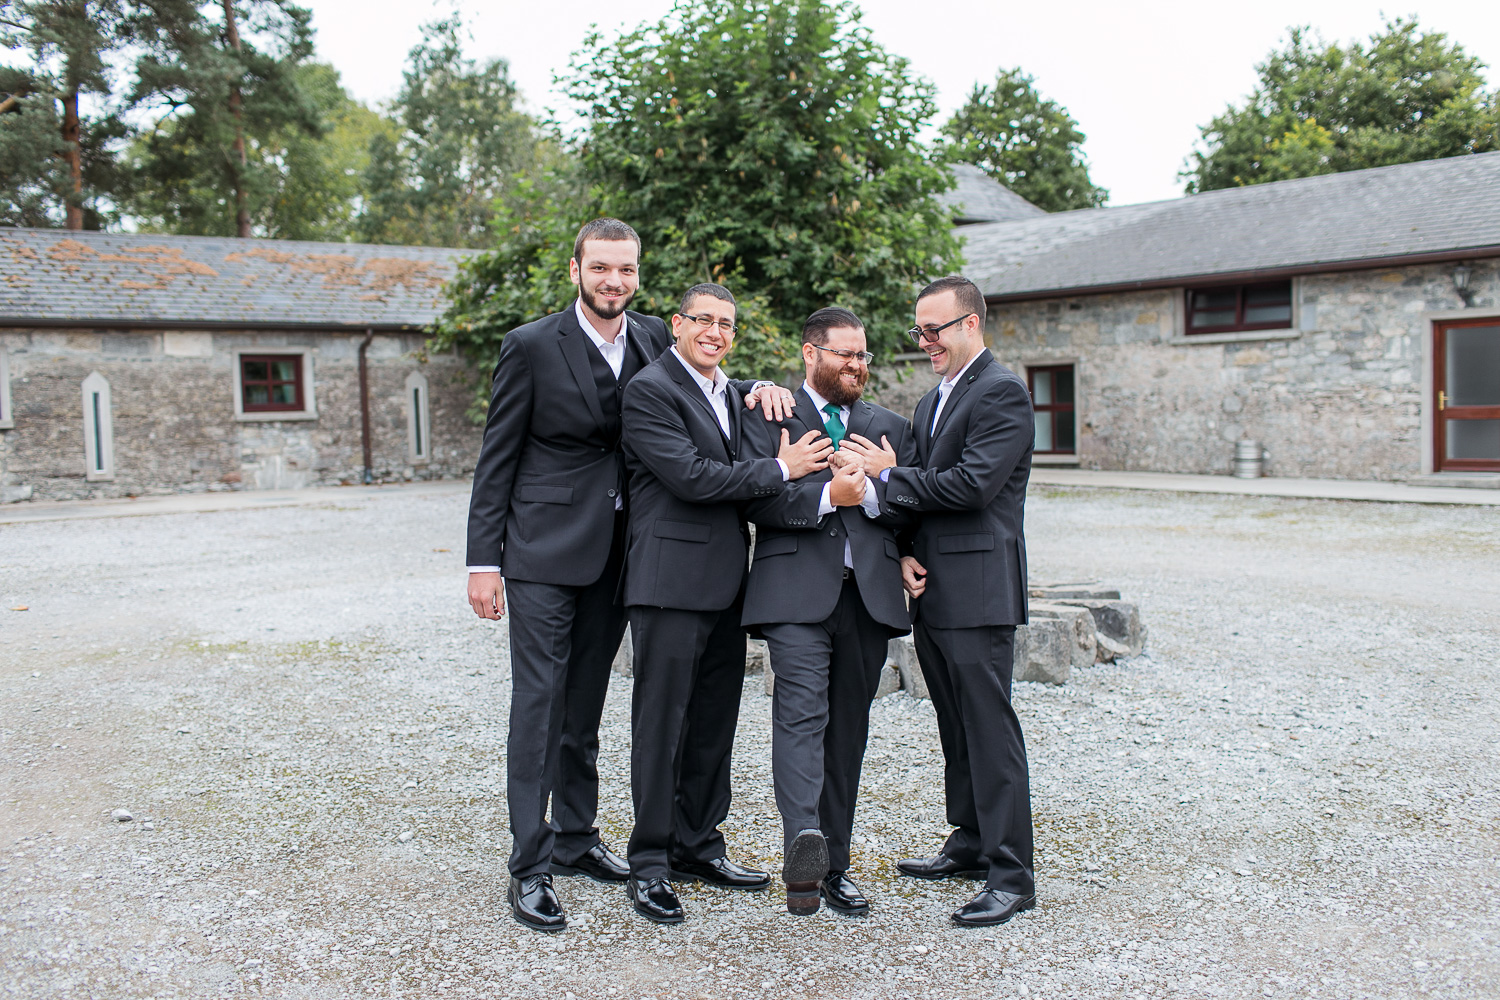 Groomsmen surrounding the groom standing in the courtyard of the refurbished stables